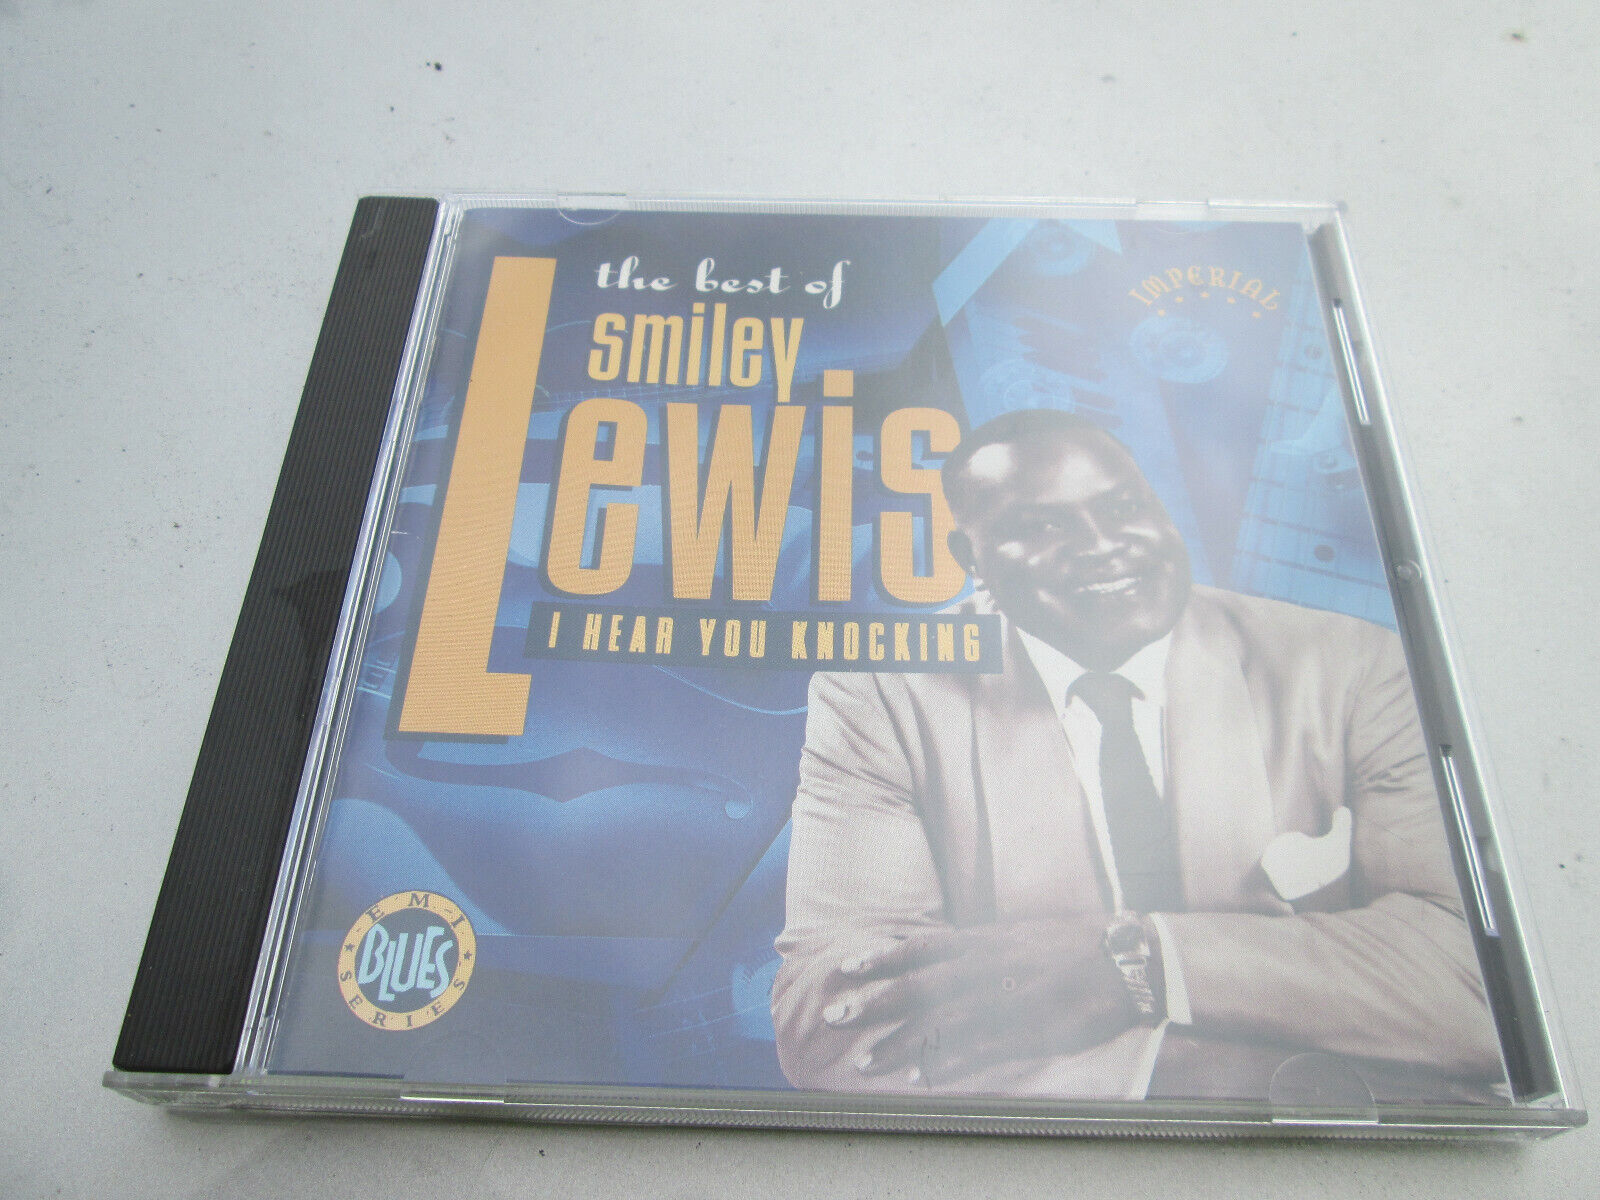 SMILEY LEWIS BEST I HEAR YOU KNOCKING BLUES CD - NICE CONDITION  - $16.99